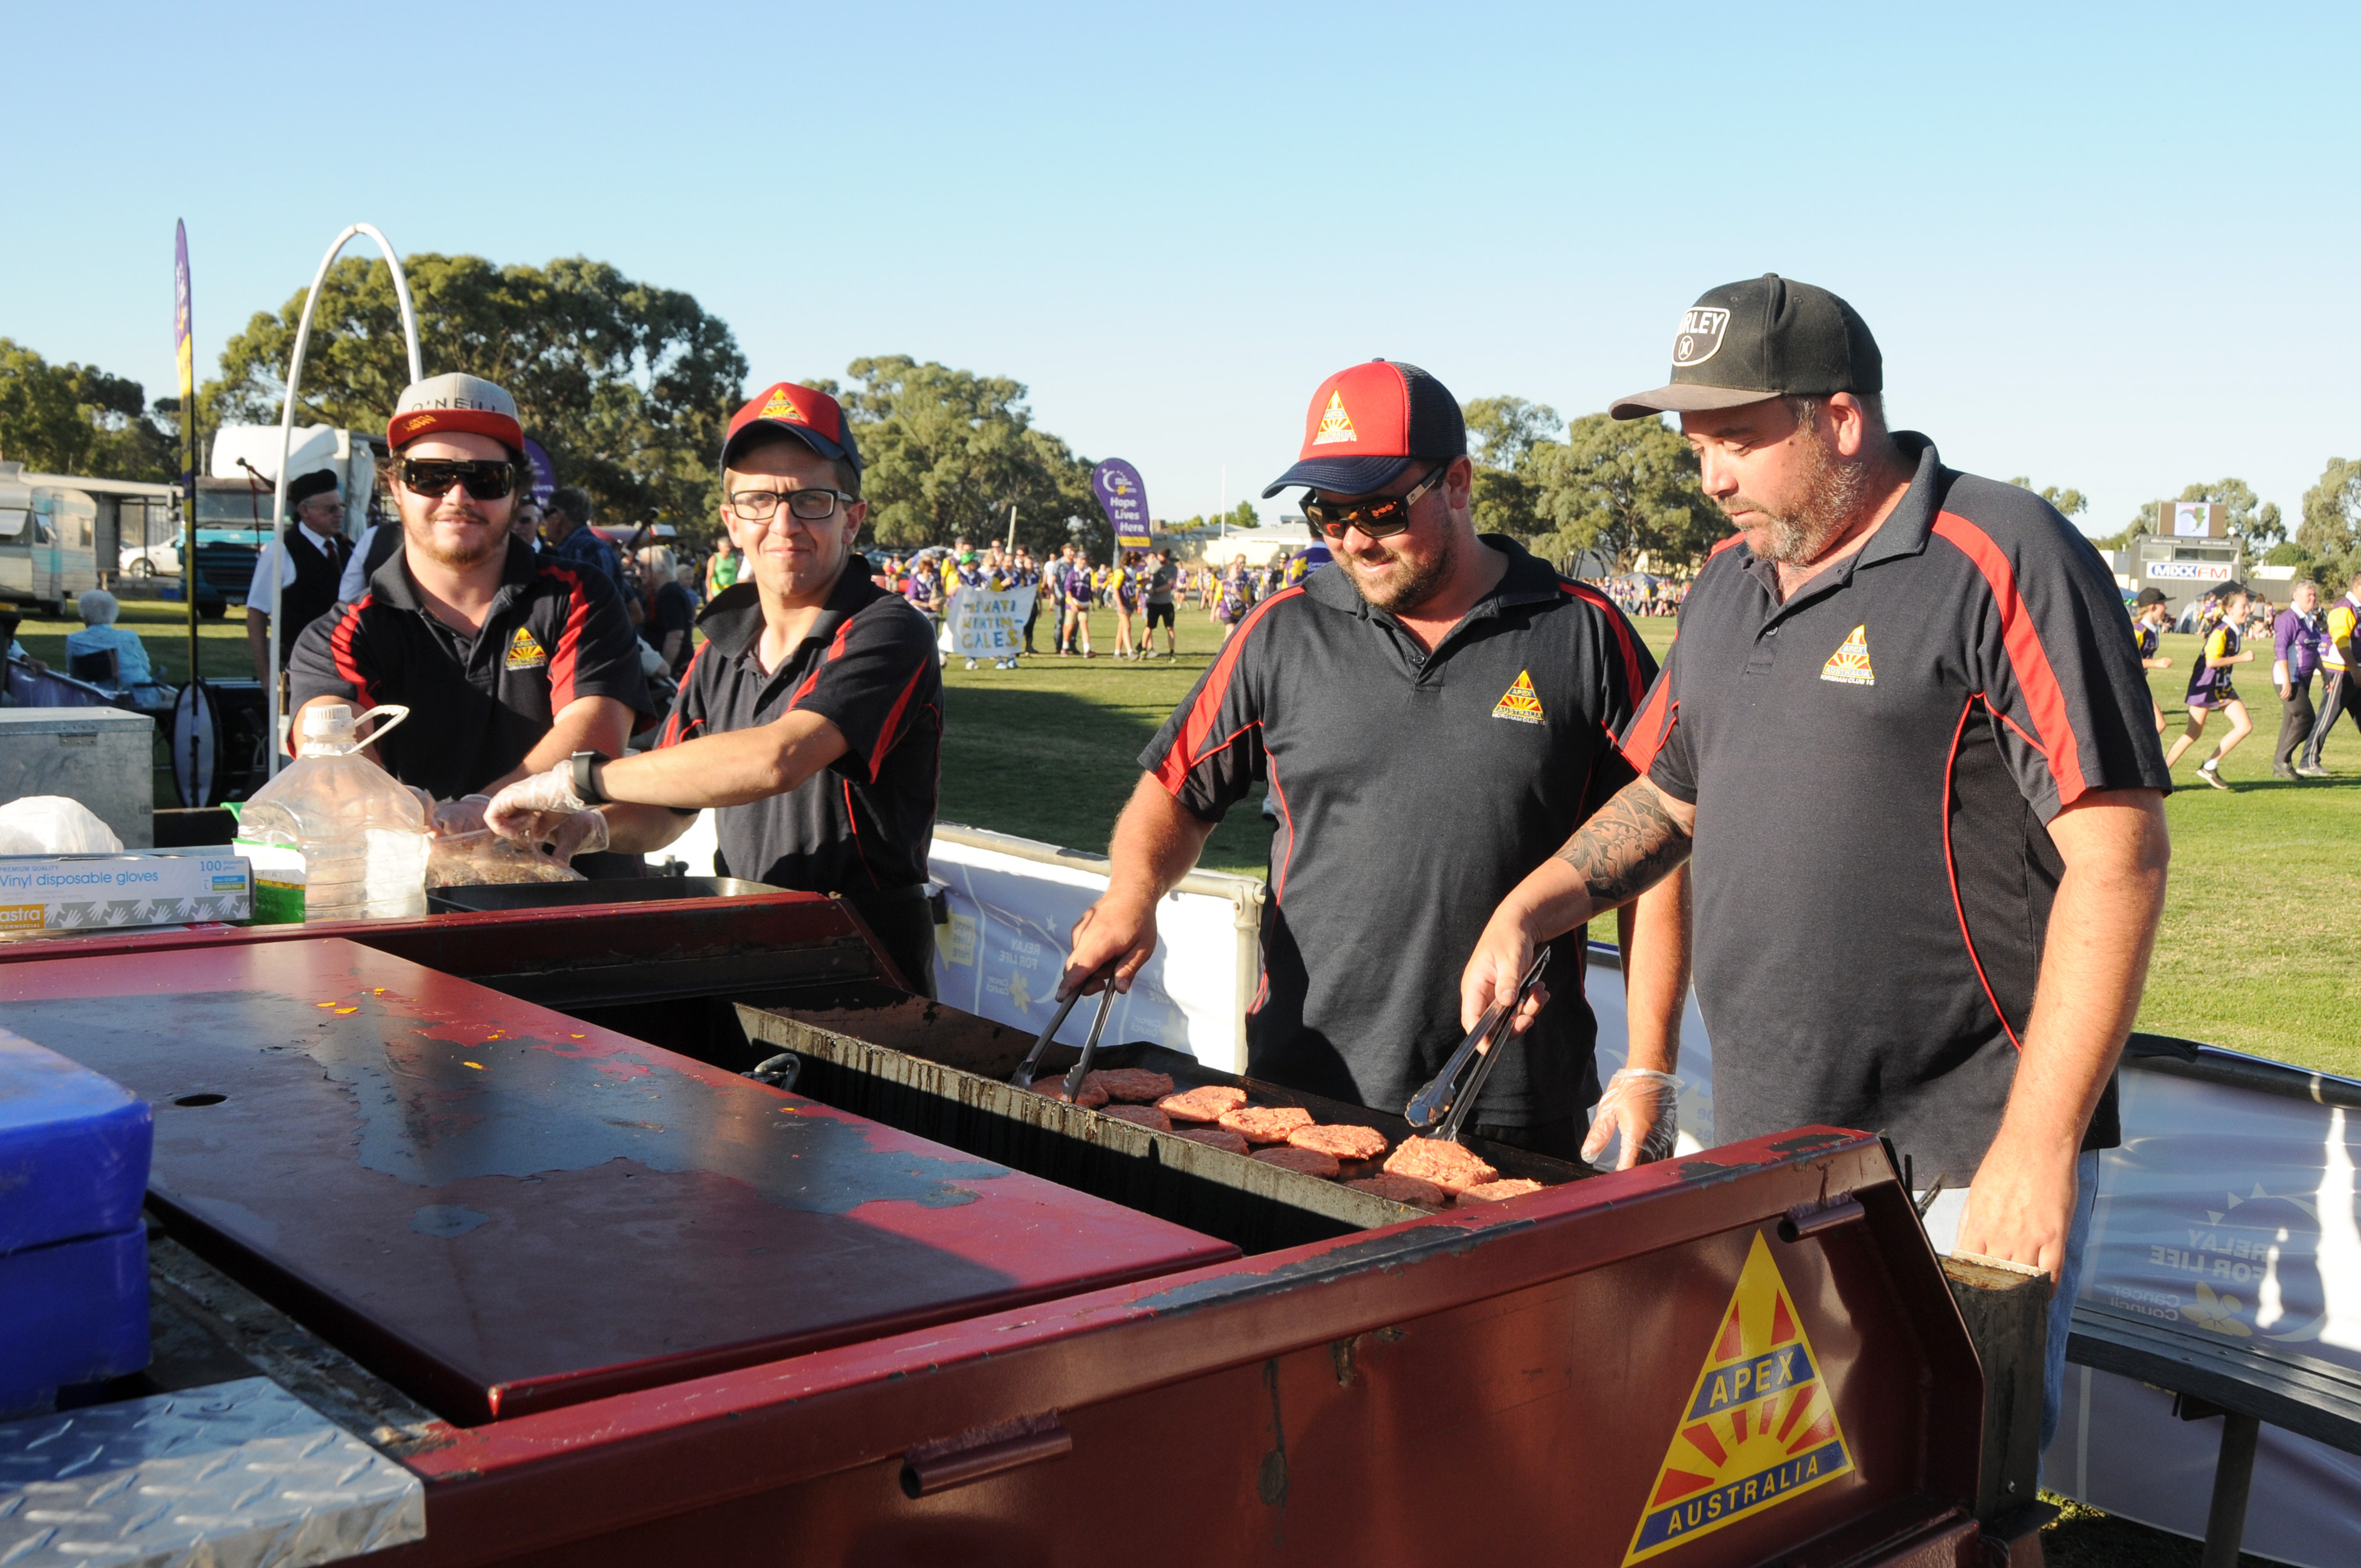 Image - Horsham and District Relay for Life, 170317. Club 15 Apex members Cam Dickerson, Stefan Phillips, Craig Clyne and Matthew Cross, president, working hard on the barbie. They later made a surprise donation to a lucky team.